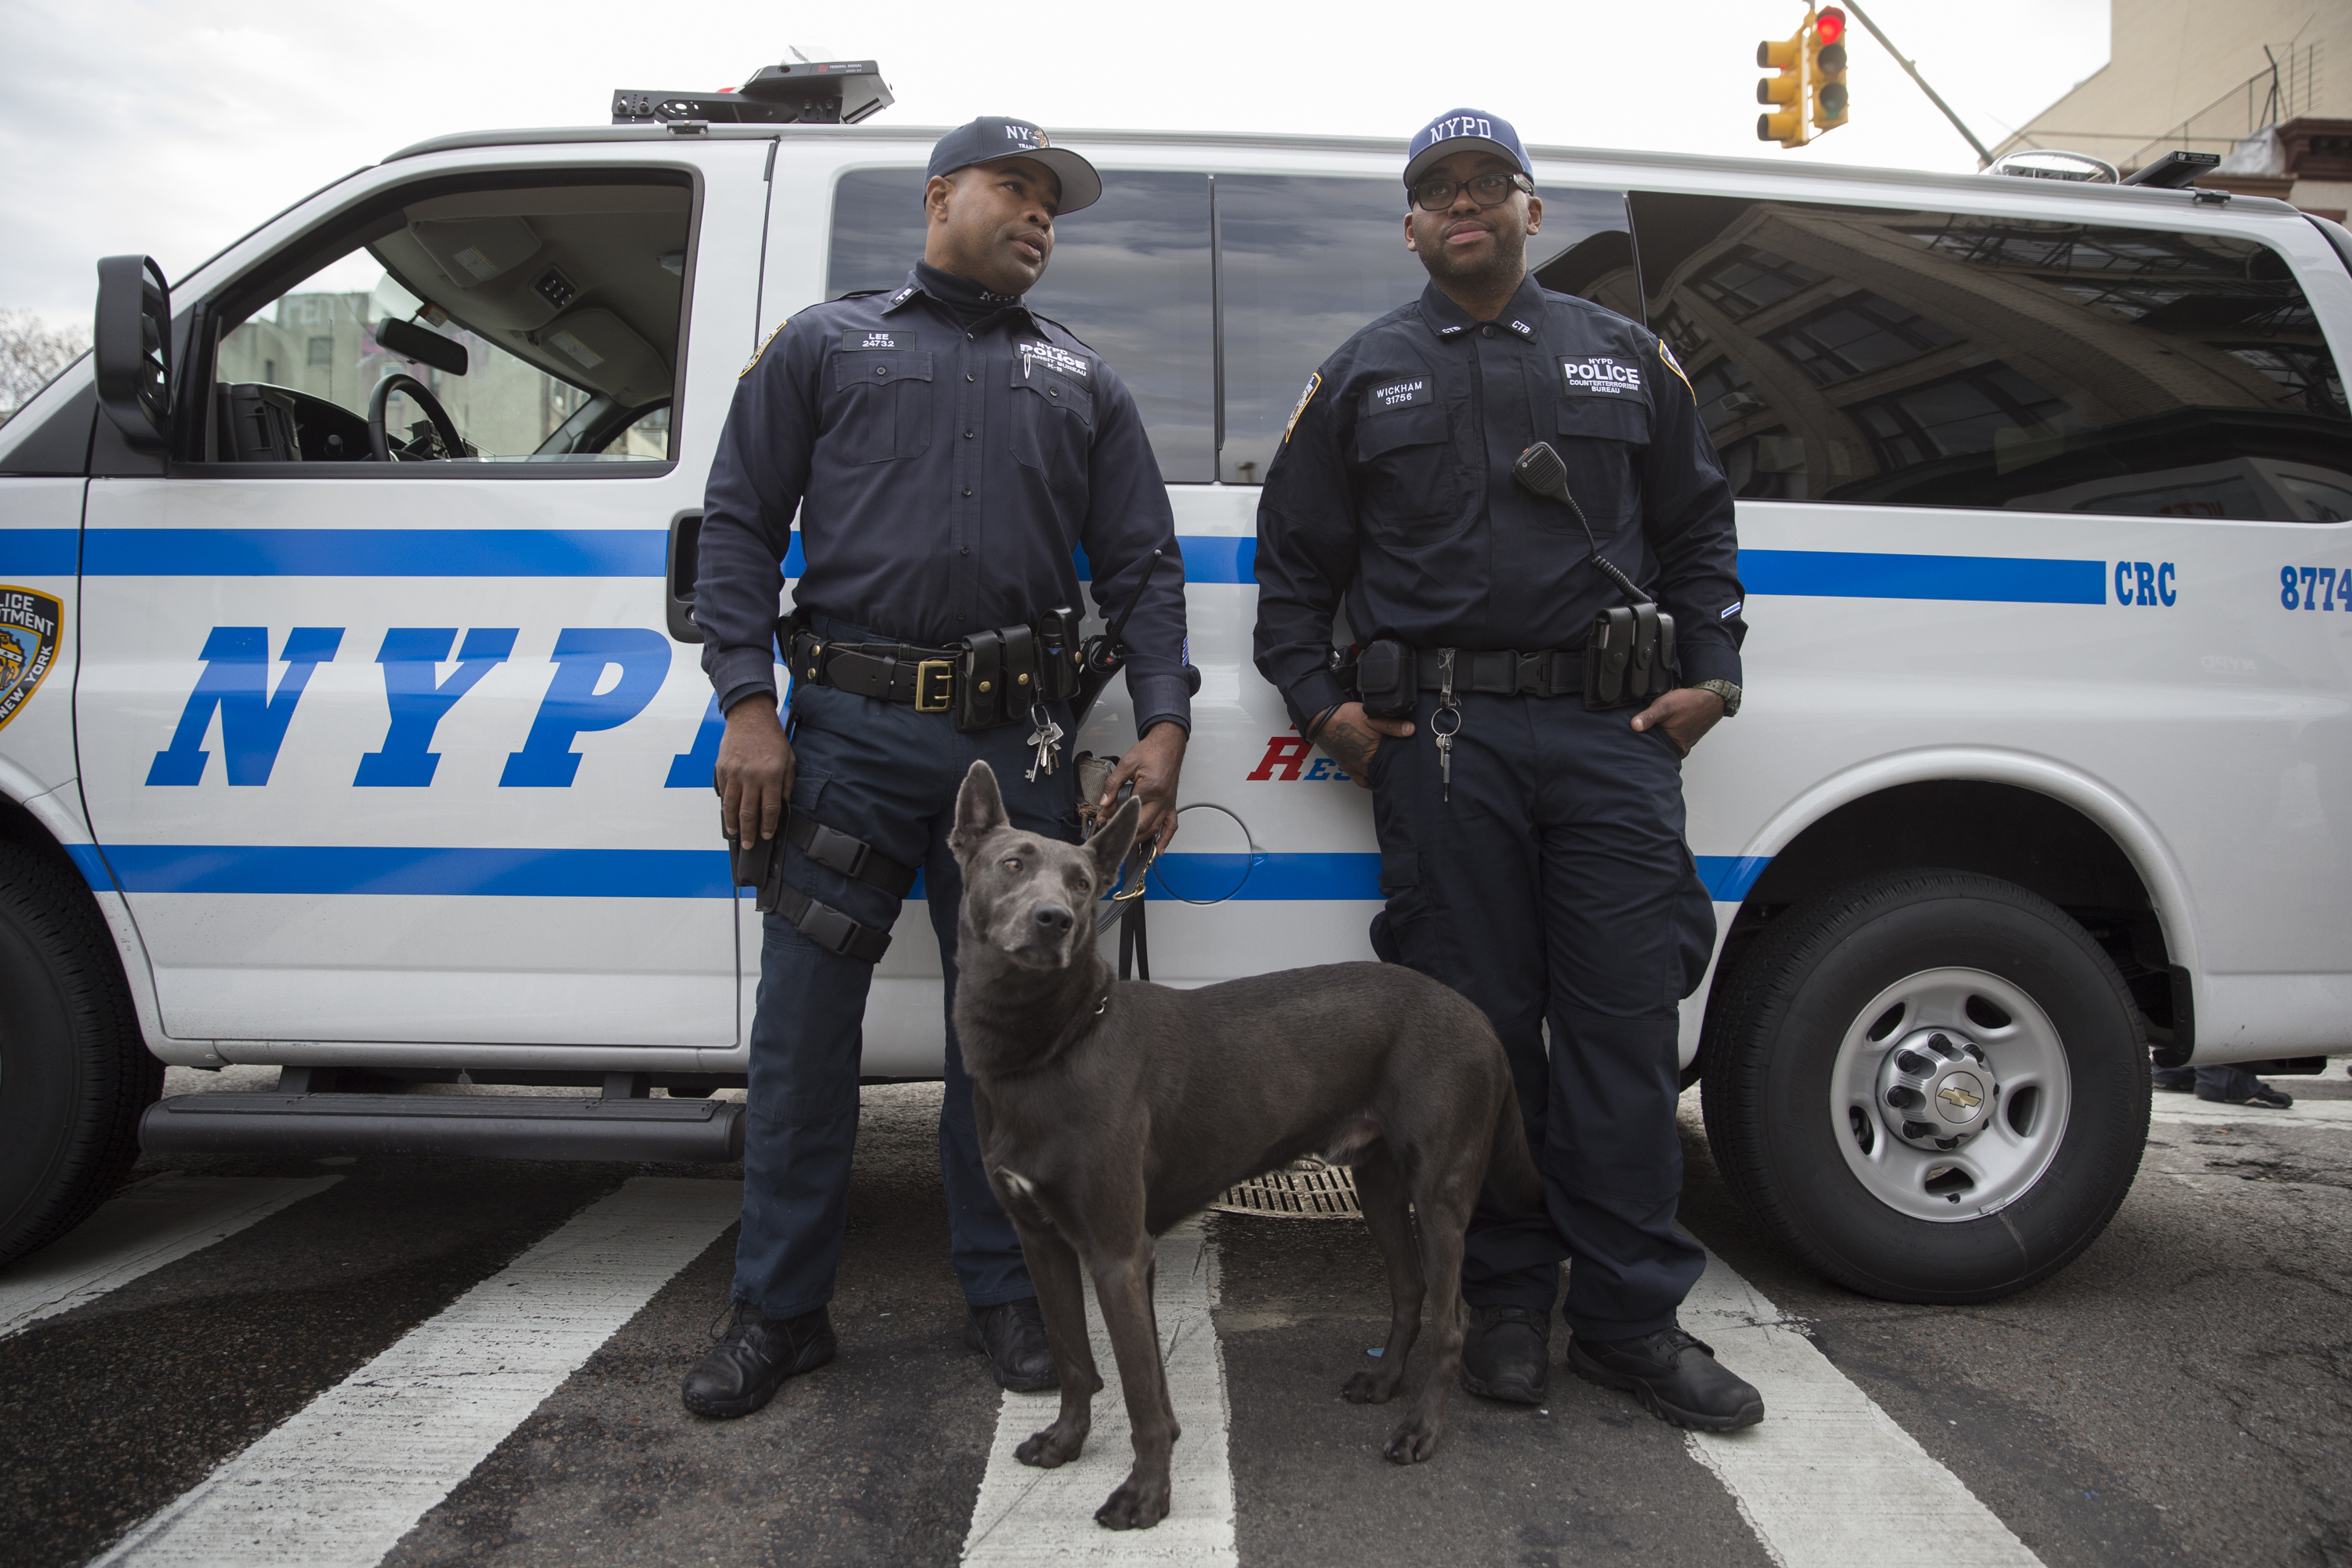 New York City Police officers from the K-9 Unit during an active shooter drill in New York City on Nov. 22, 2015.